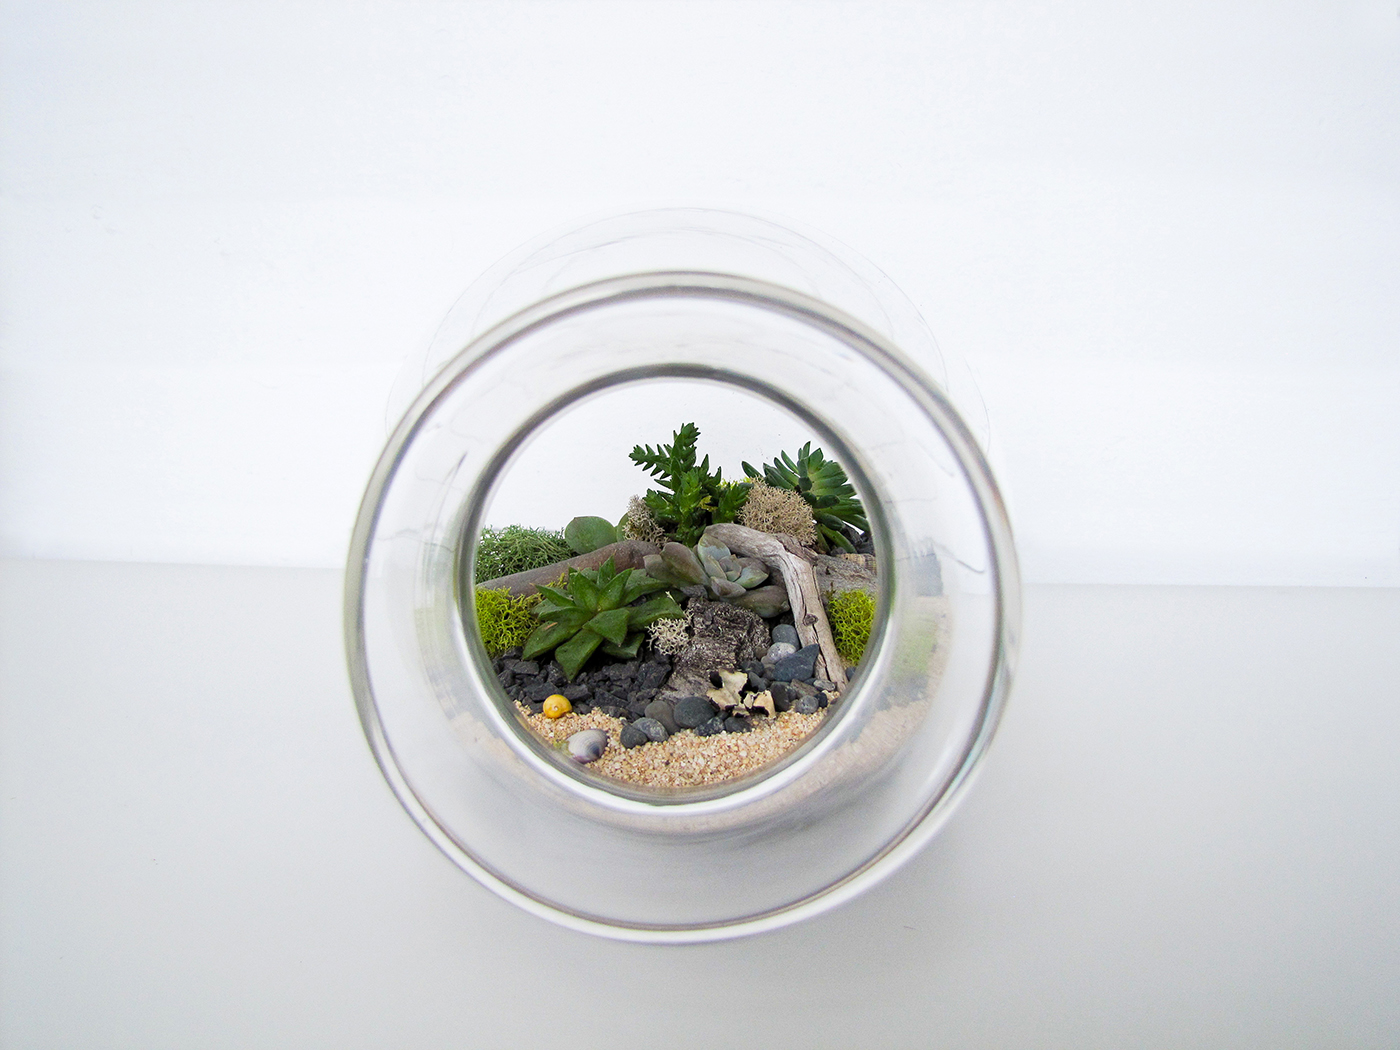 PLANT terrariums  will be at the  New Craft Coalition  show and sale this weekend.